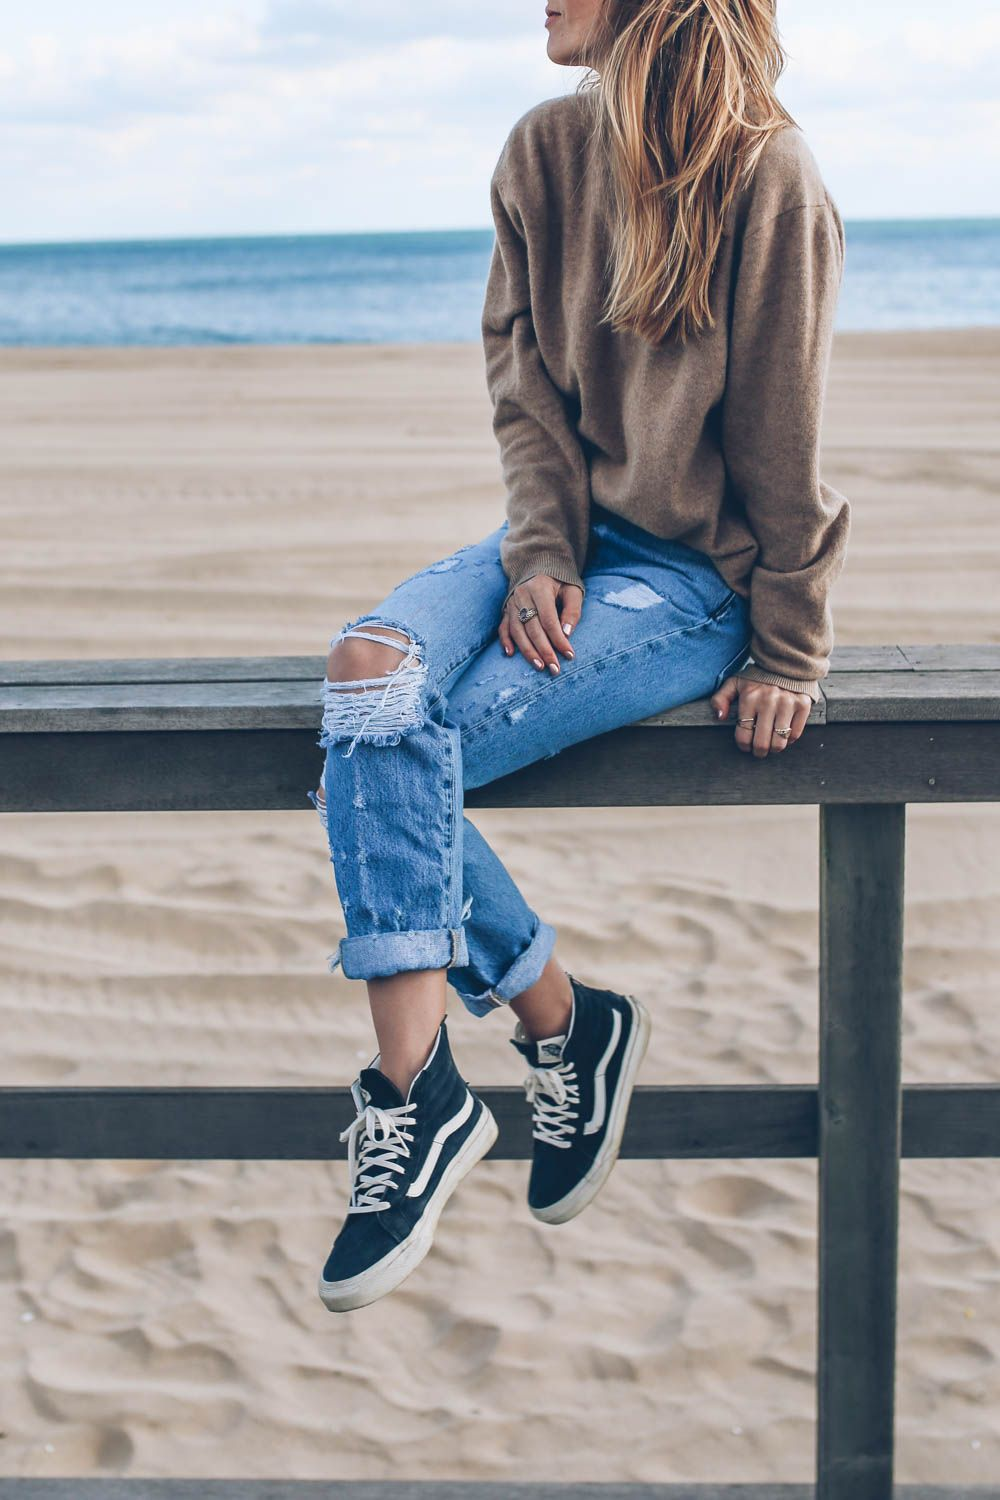 Girls Getaway in Montauk | Cold beach outfit, Beach day ...